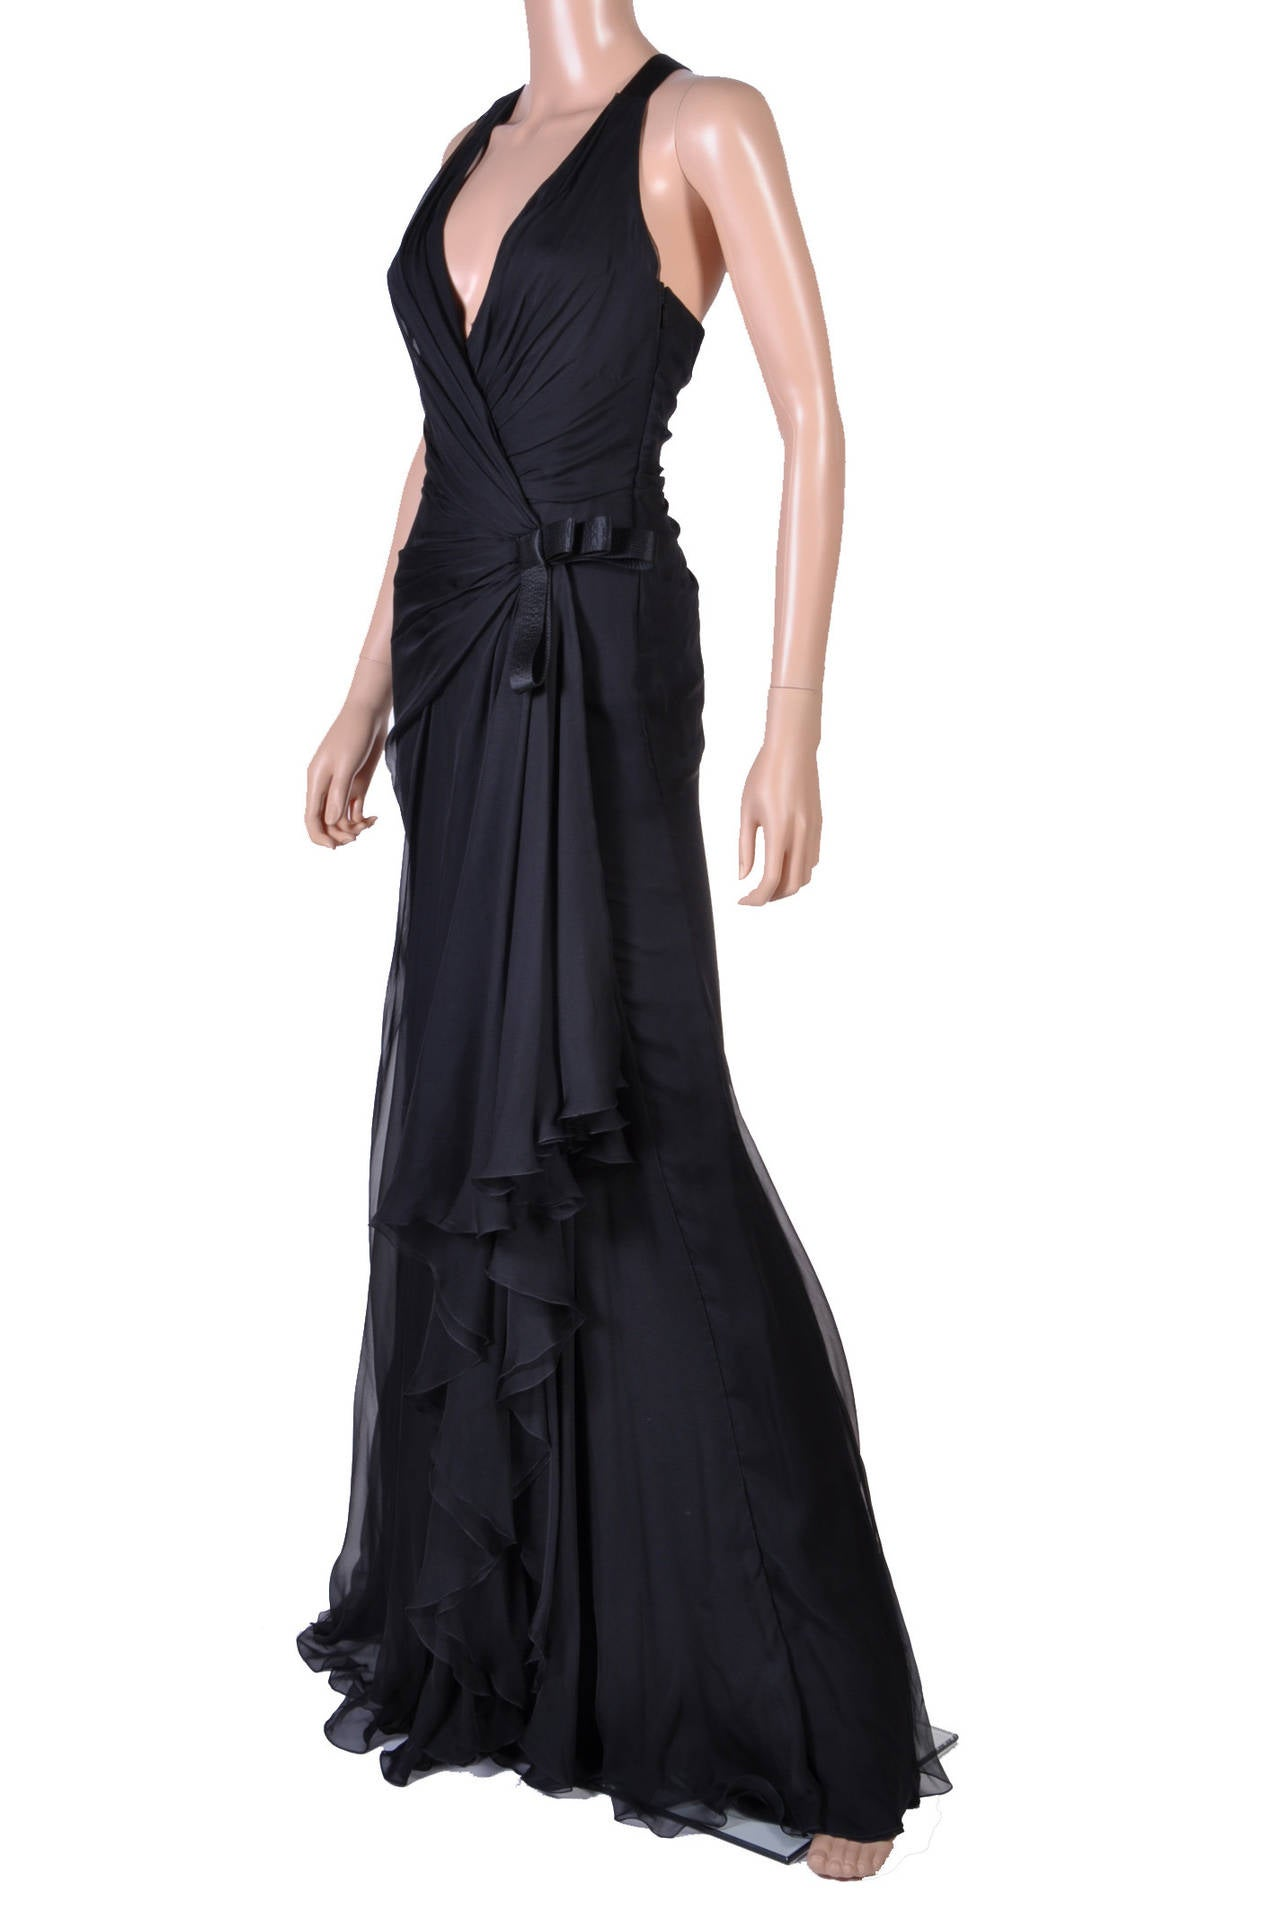 New VERSACE Black Chiffon Silk Gown In New Never_worn Condition For Sale In Montgomery, TX